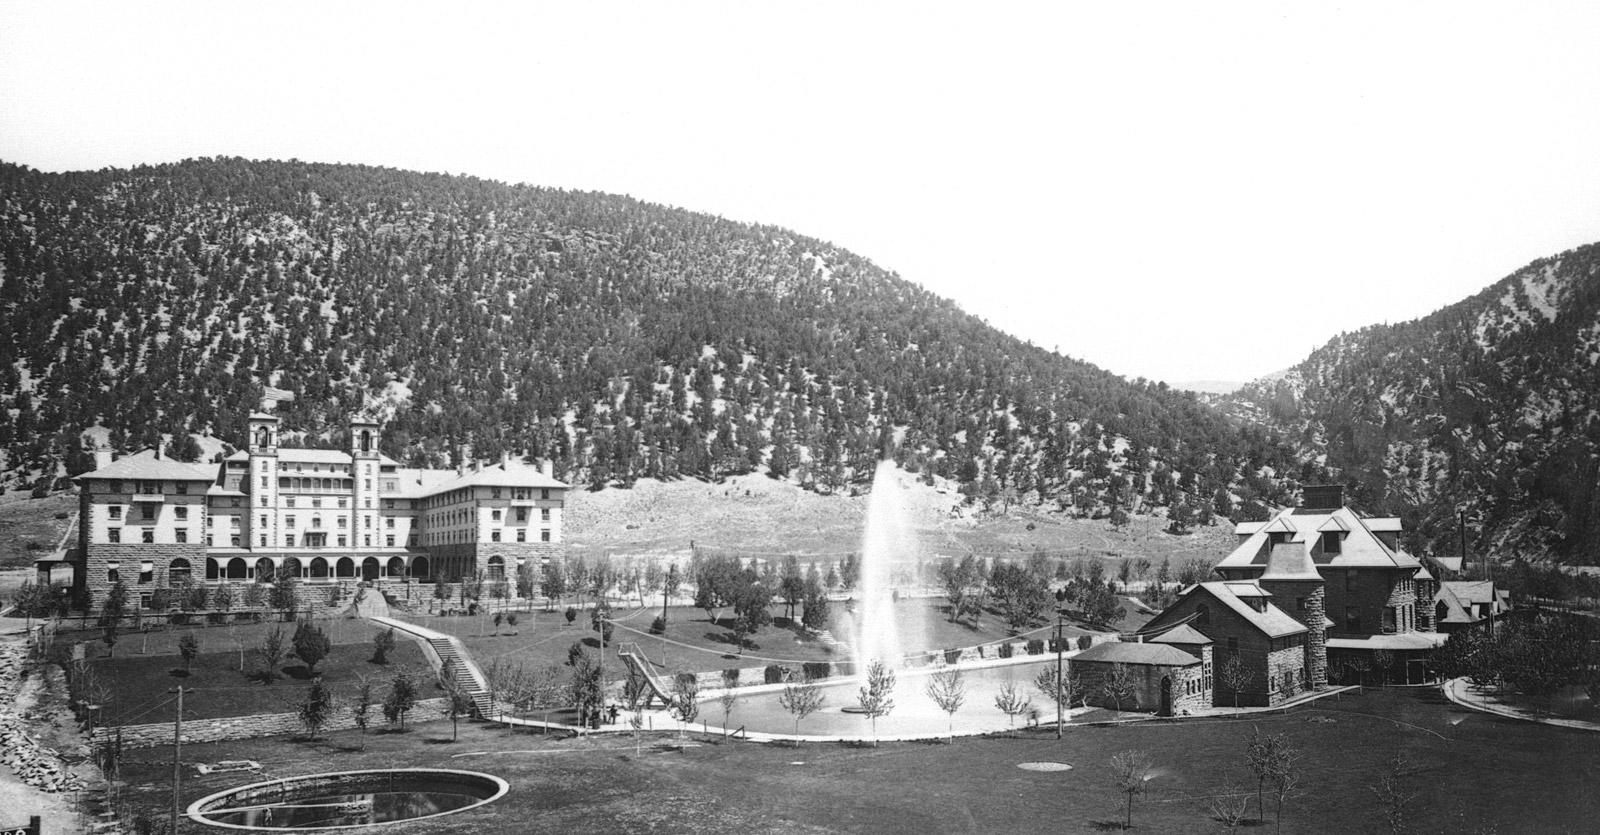 Hotel Colorado and Glenwood Hot Springs in 1893